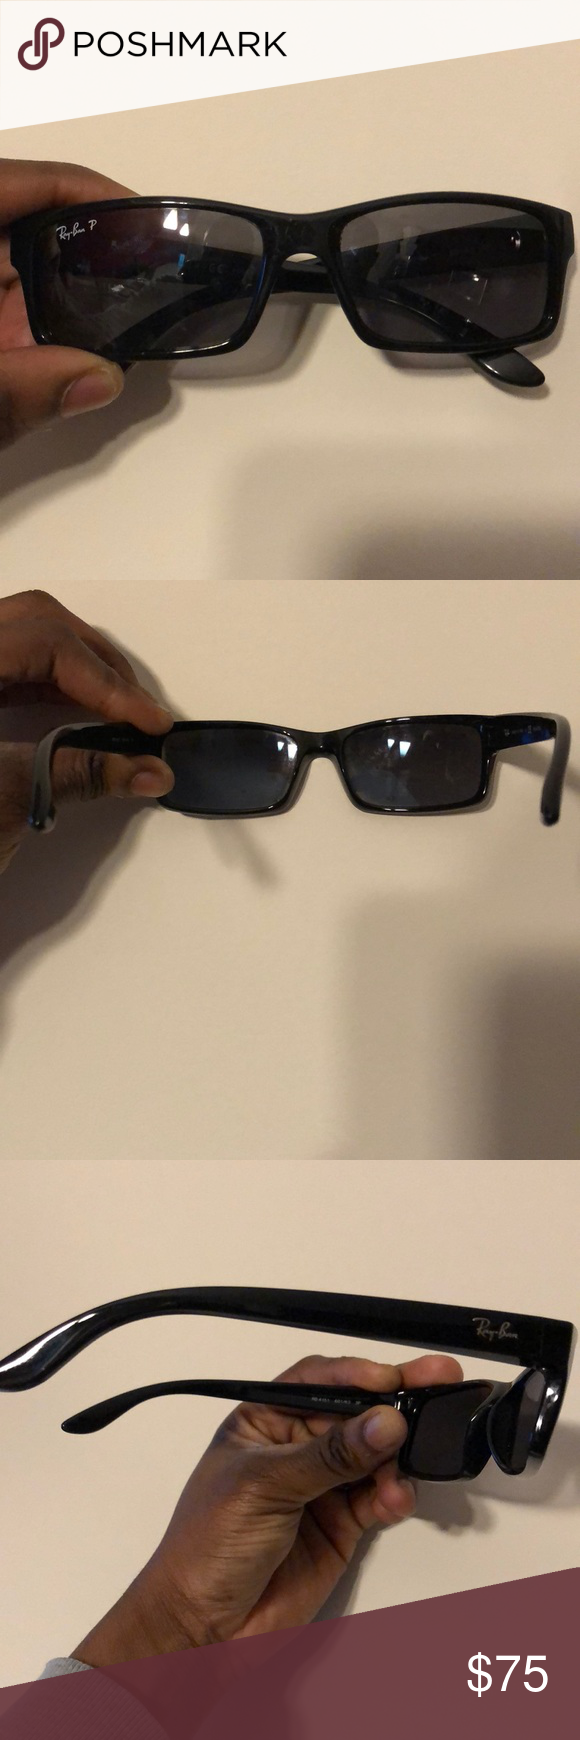 replica ray bans wayfarer